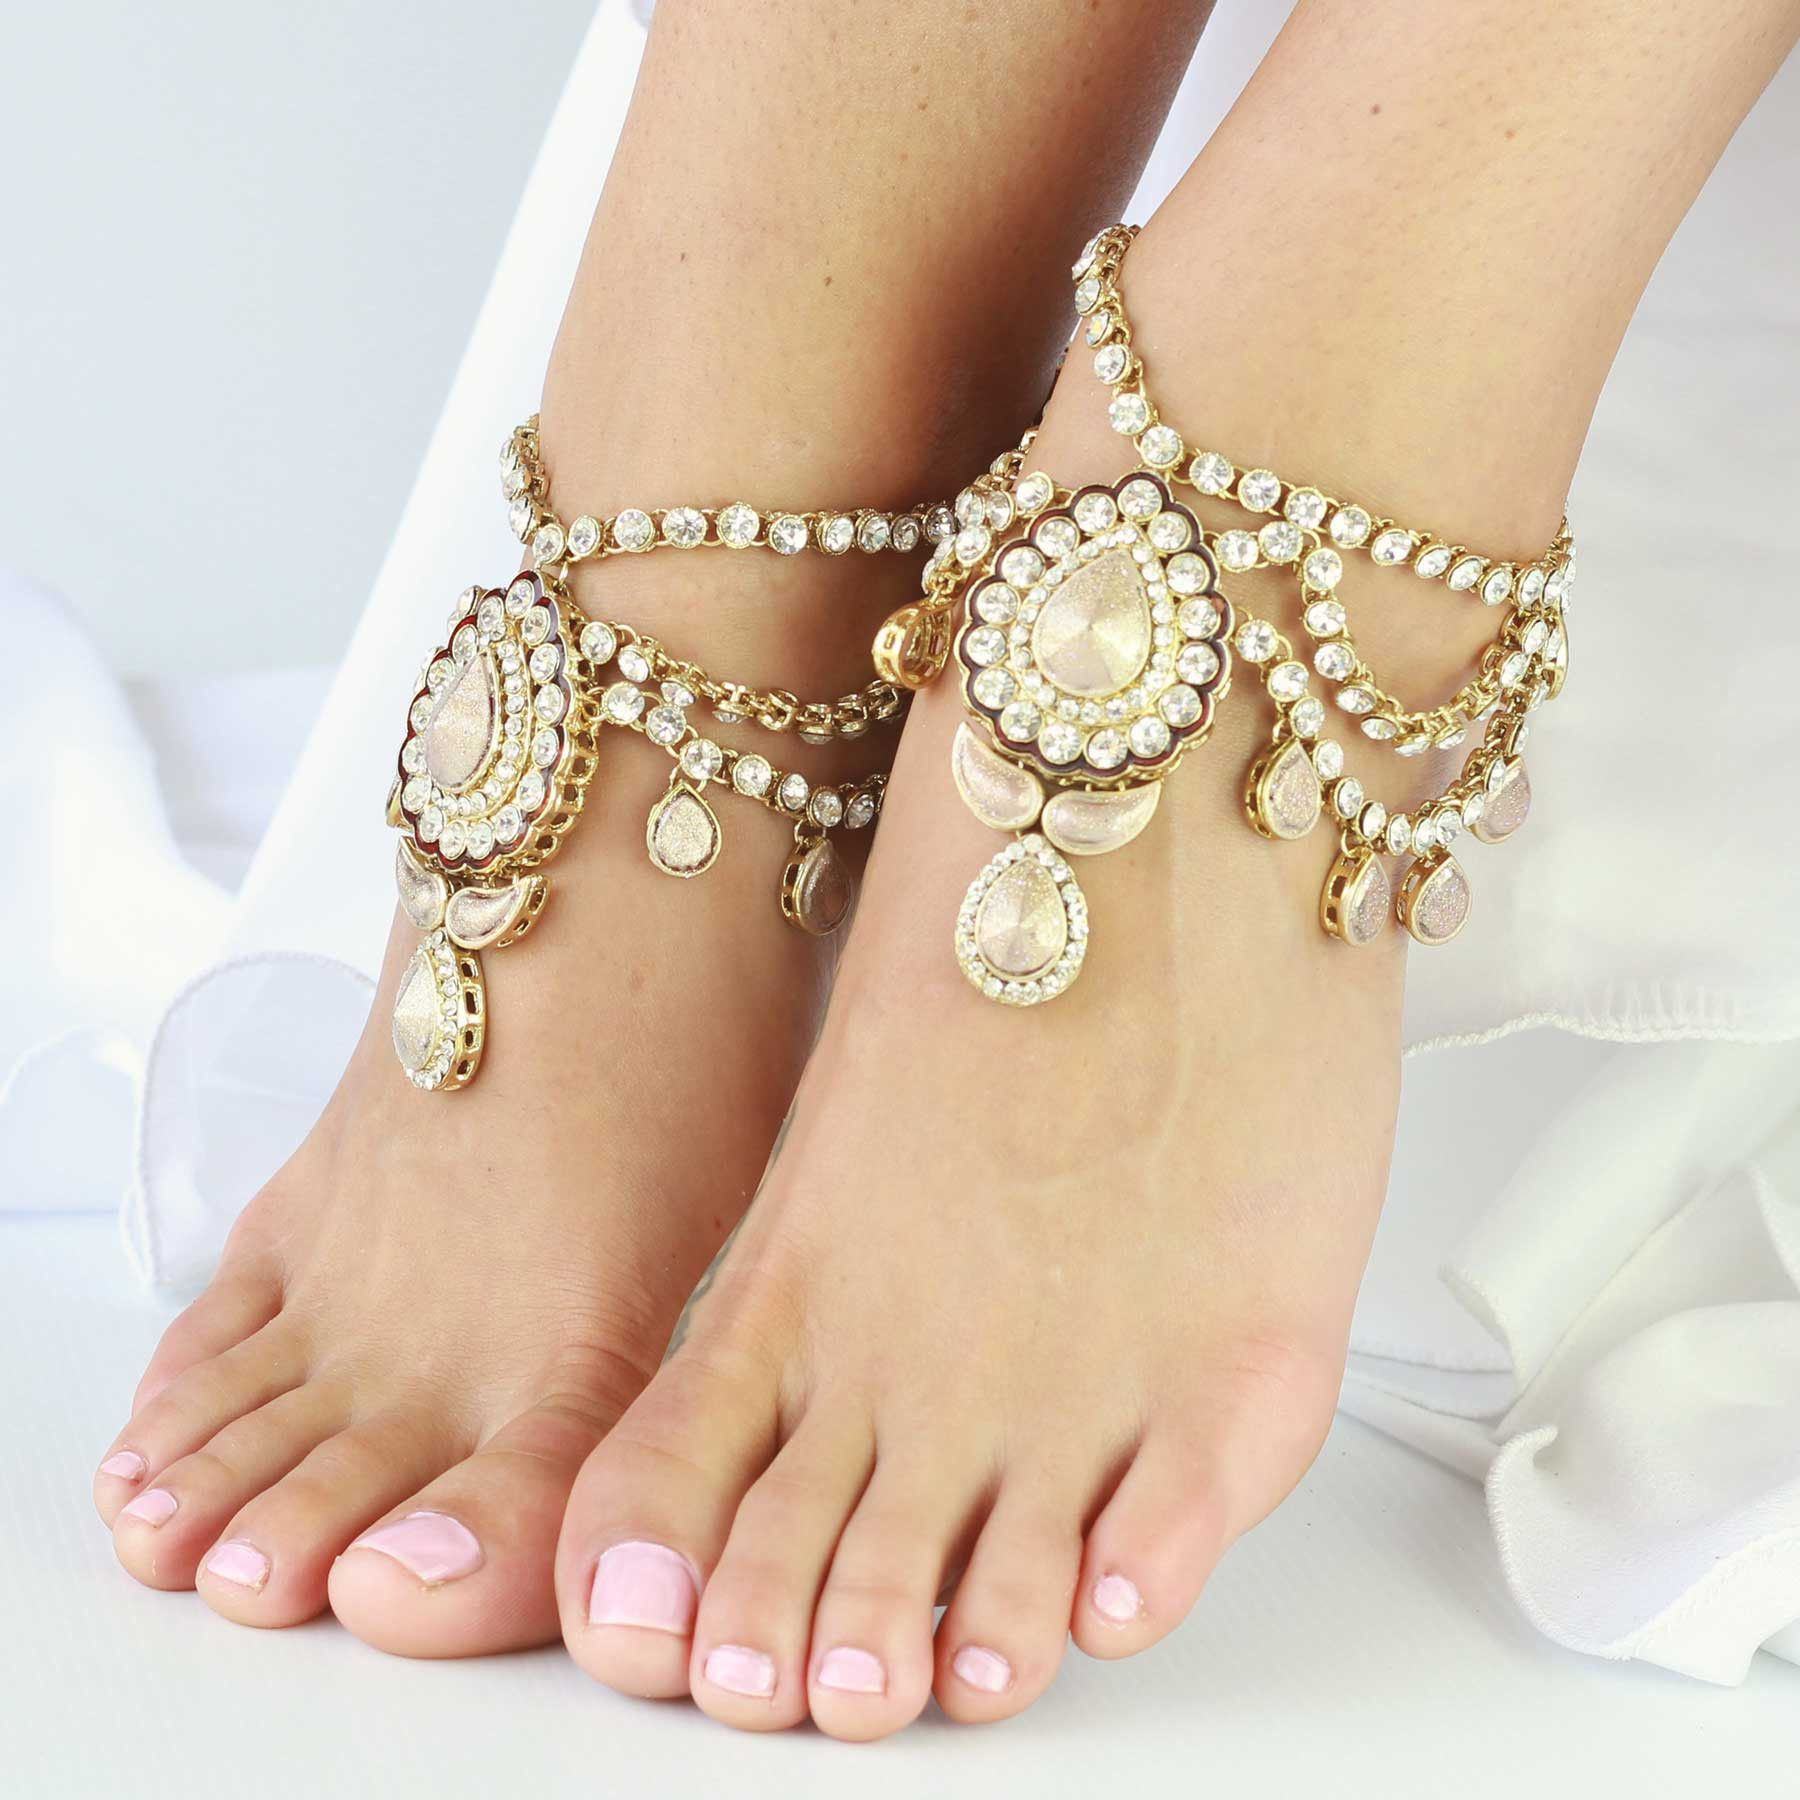 anklet foot jewelry wedding barefoot with beach rhinestone pin chain toe crystal sandal ring